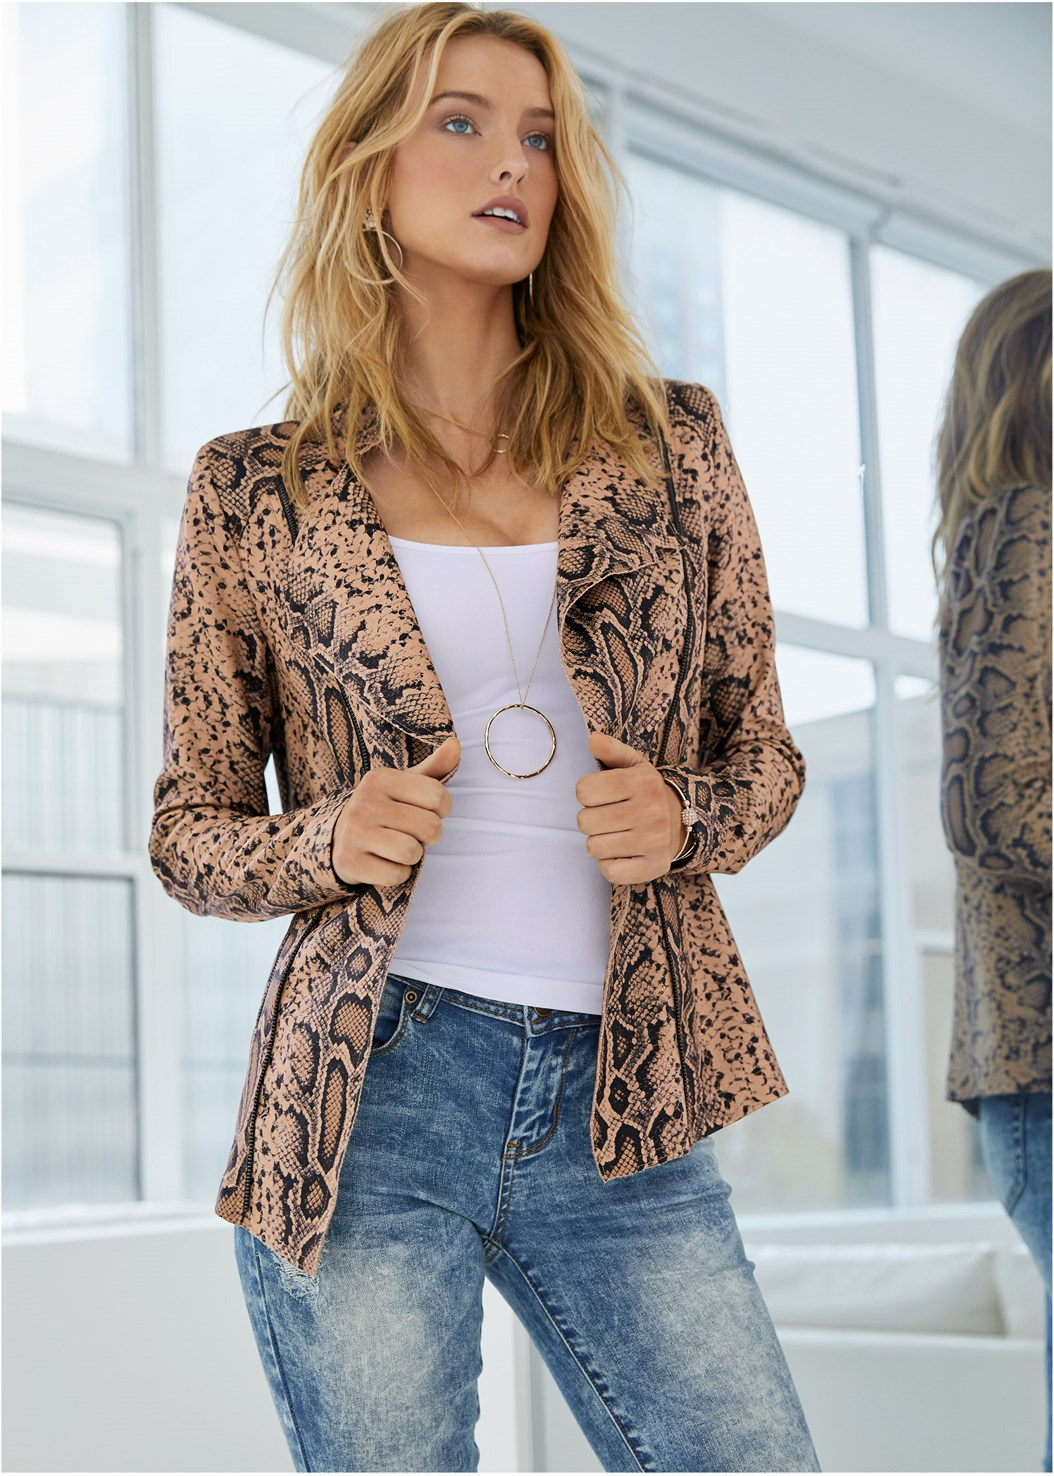 Snake Print Jacket,Basic Cami Two Pack,Acid Wash Jeans,Faux Leather Pants,Cage Balconette Bra,Tiger Detail Earrings